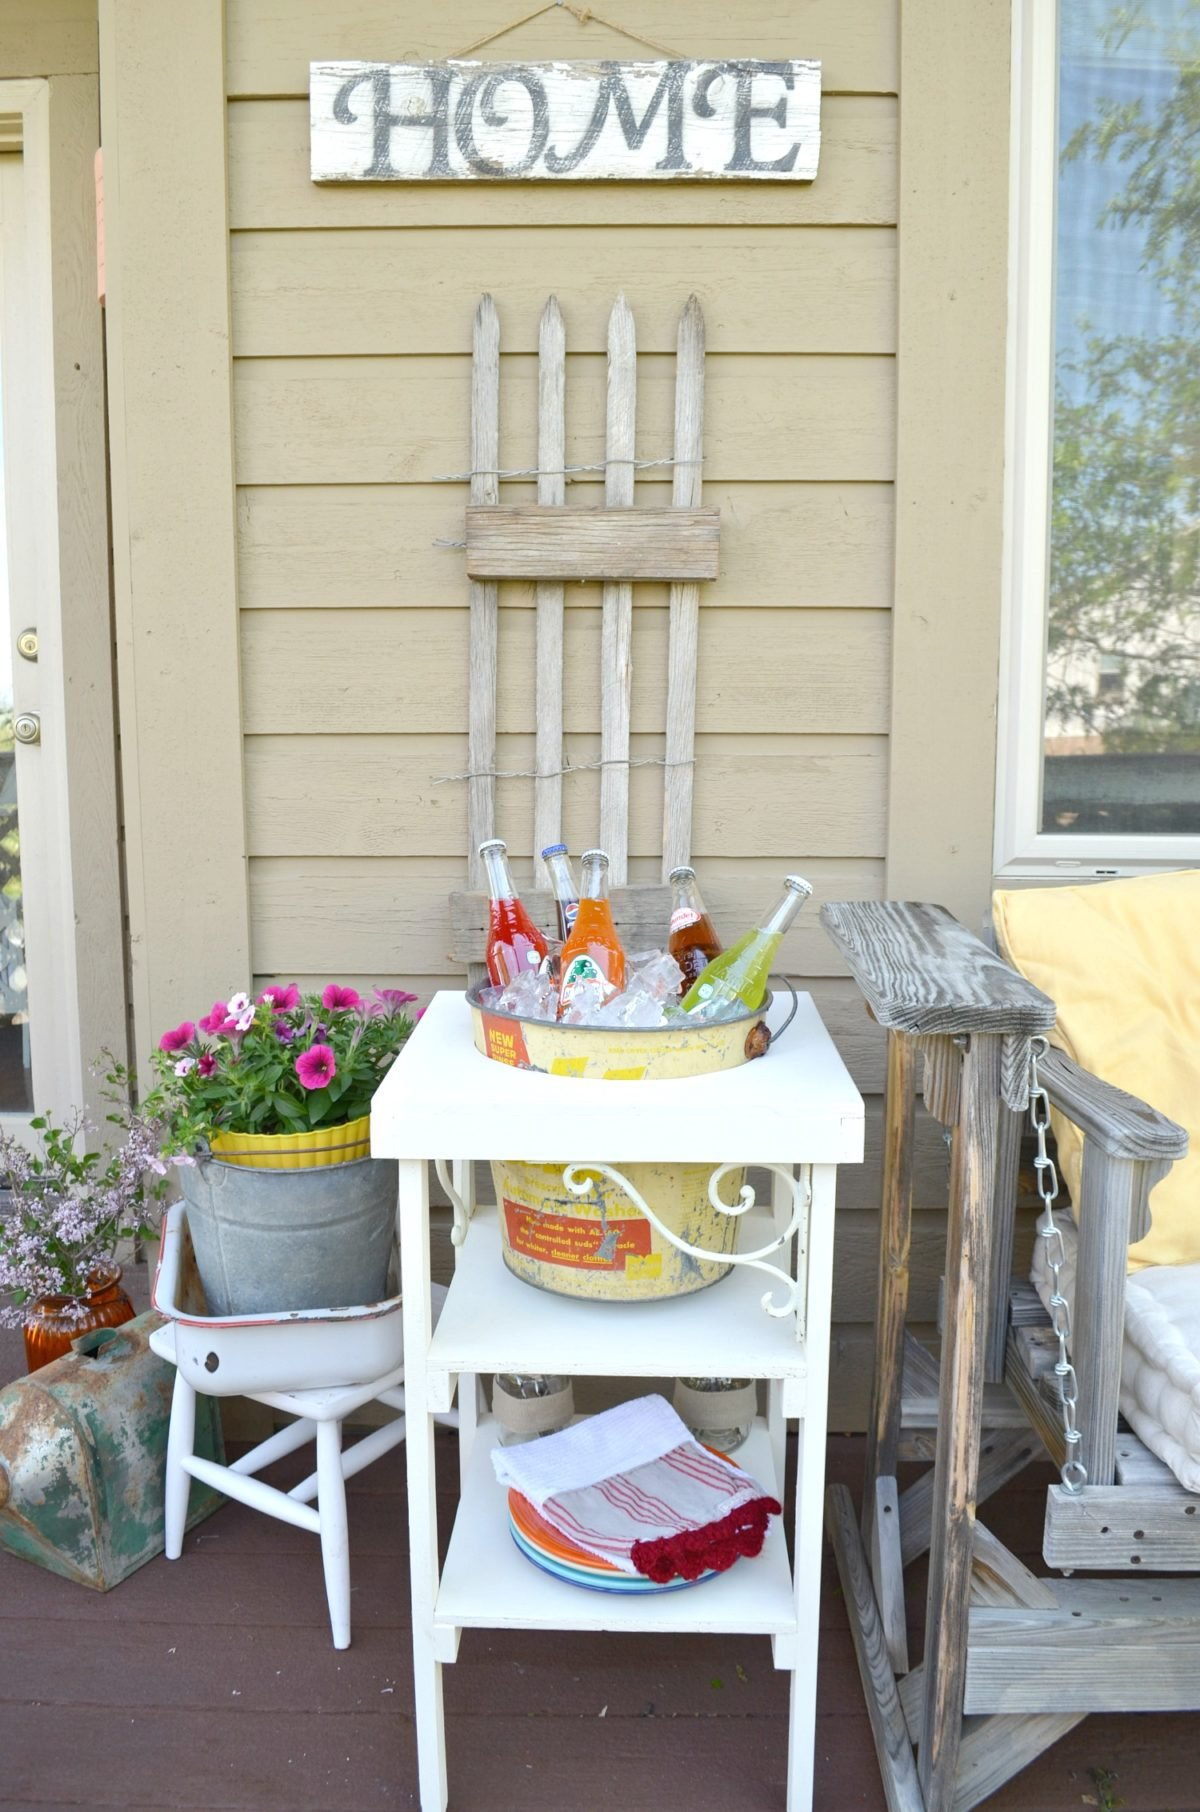 DIY Farmhouse Style Beverage Station and Porch